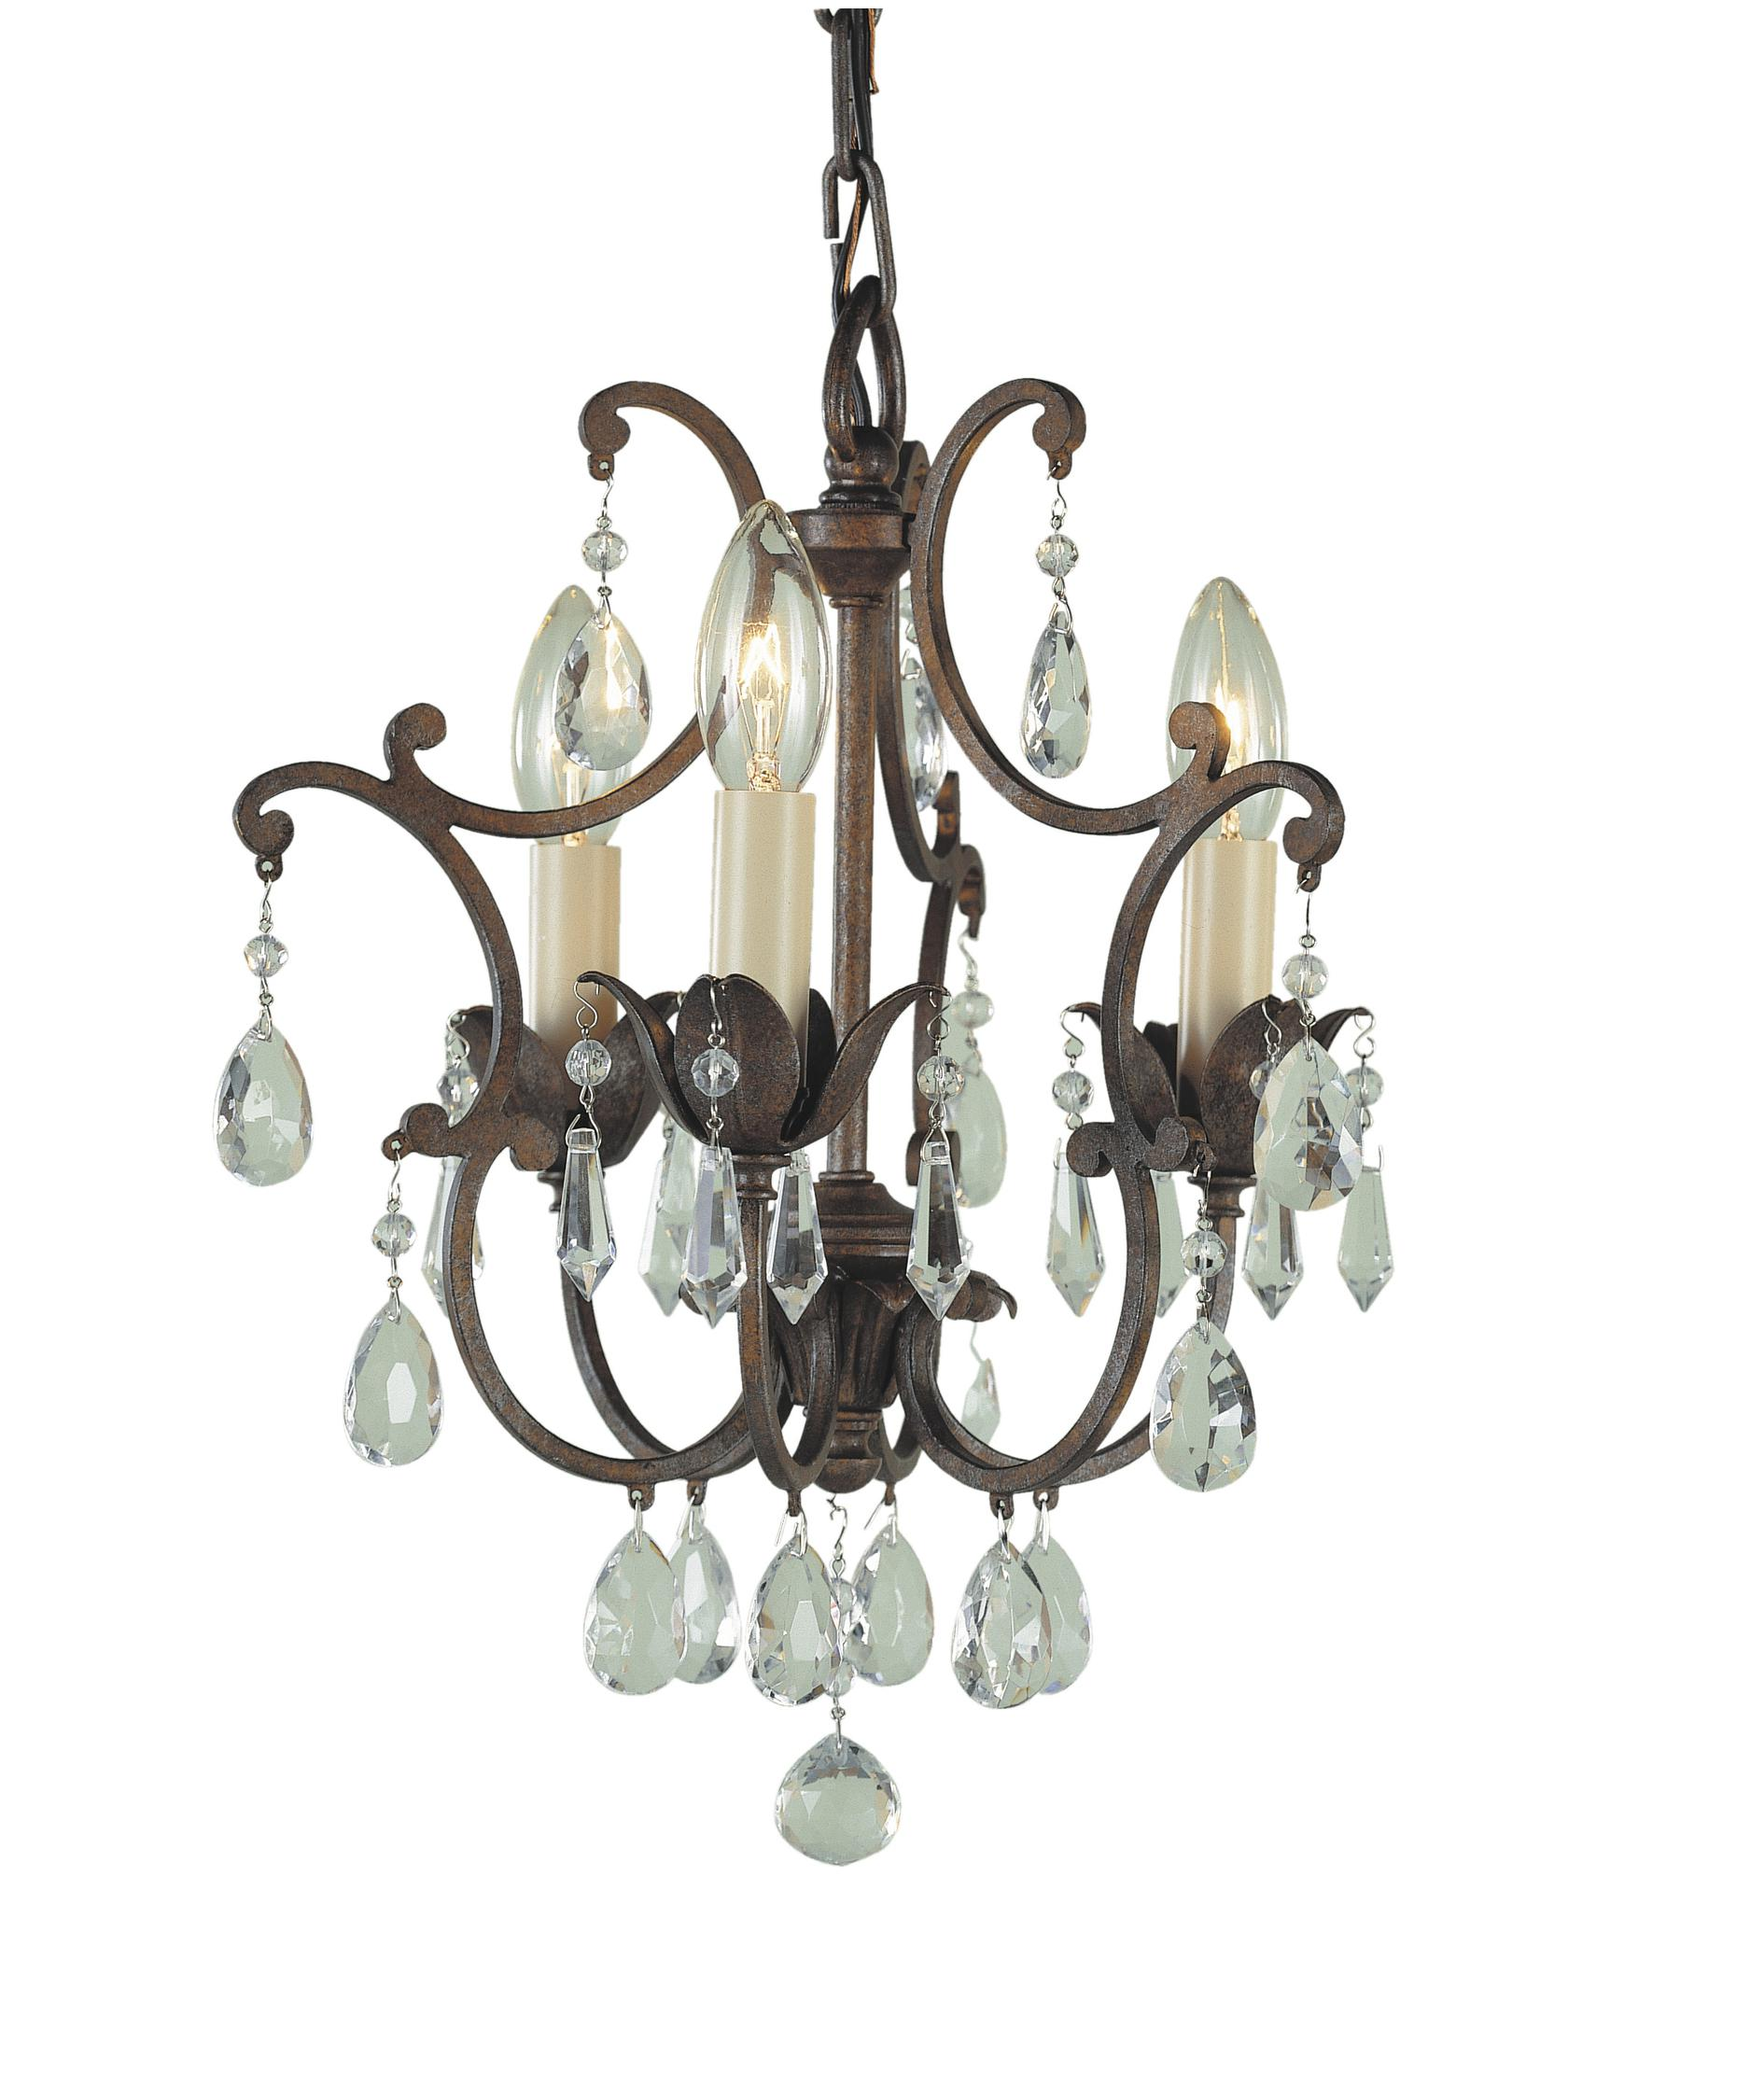 Murray Feiss Maison De Ville 11 Inch Wide 3 Light Mini Chandelier – Murray Feiss Chandeliers